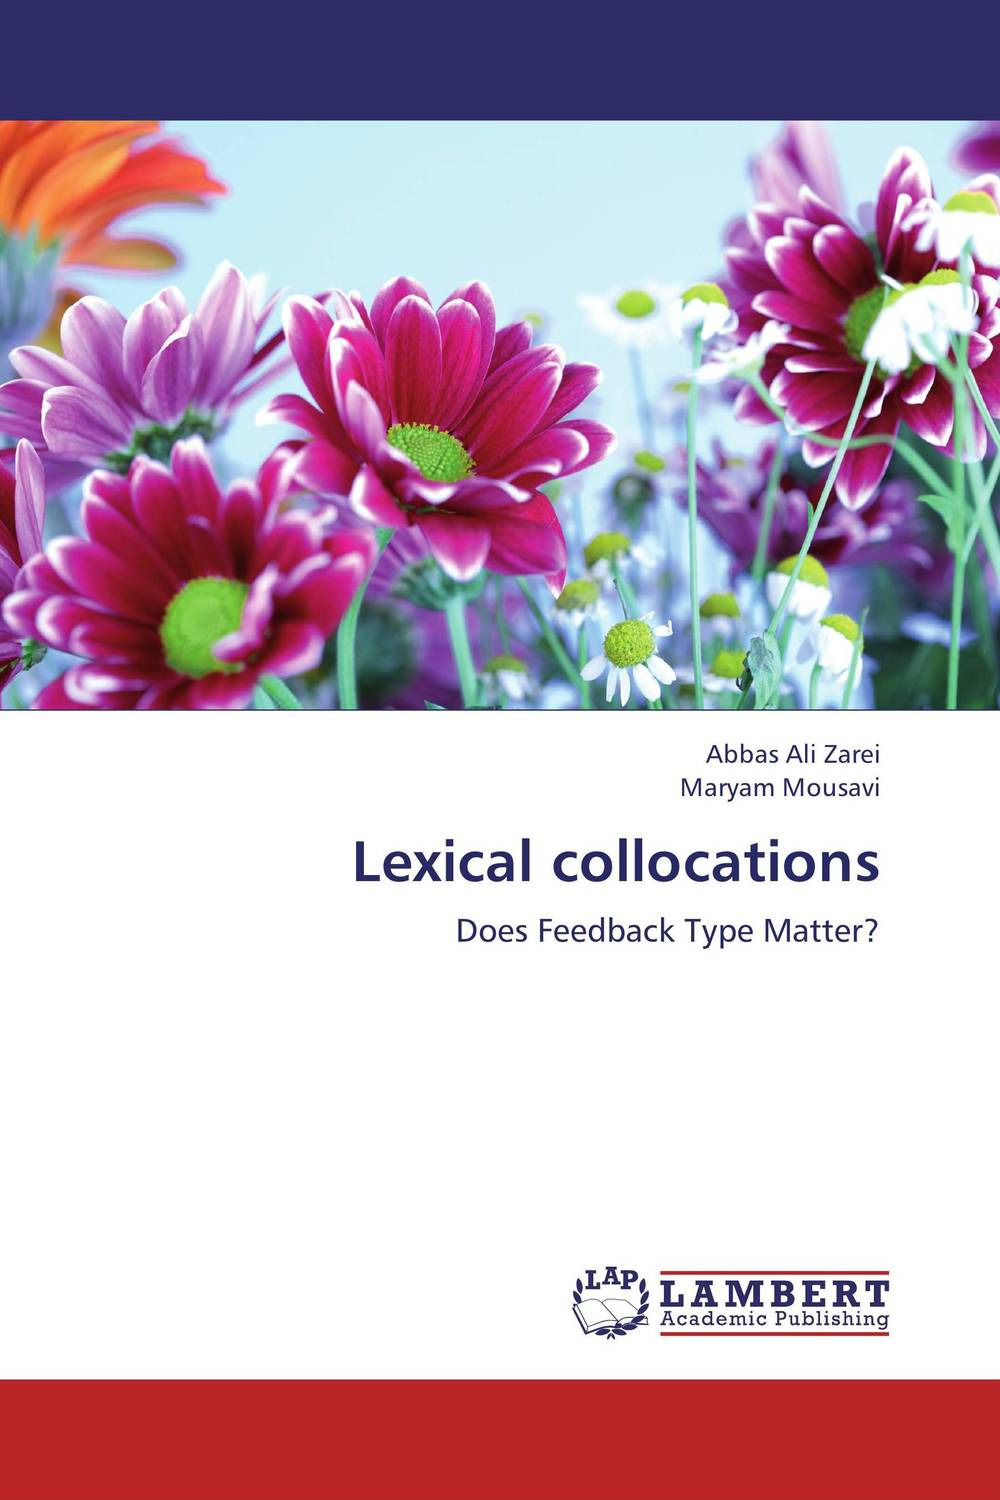 Lexical collocations language change and lexical variation in youth language